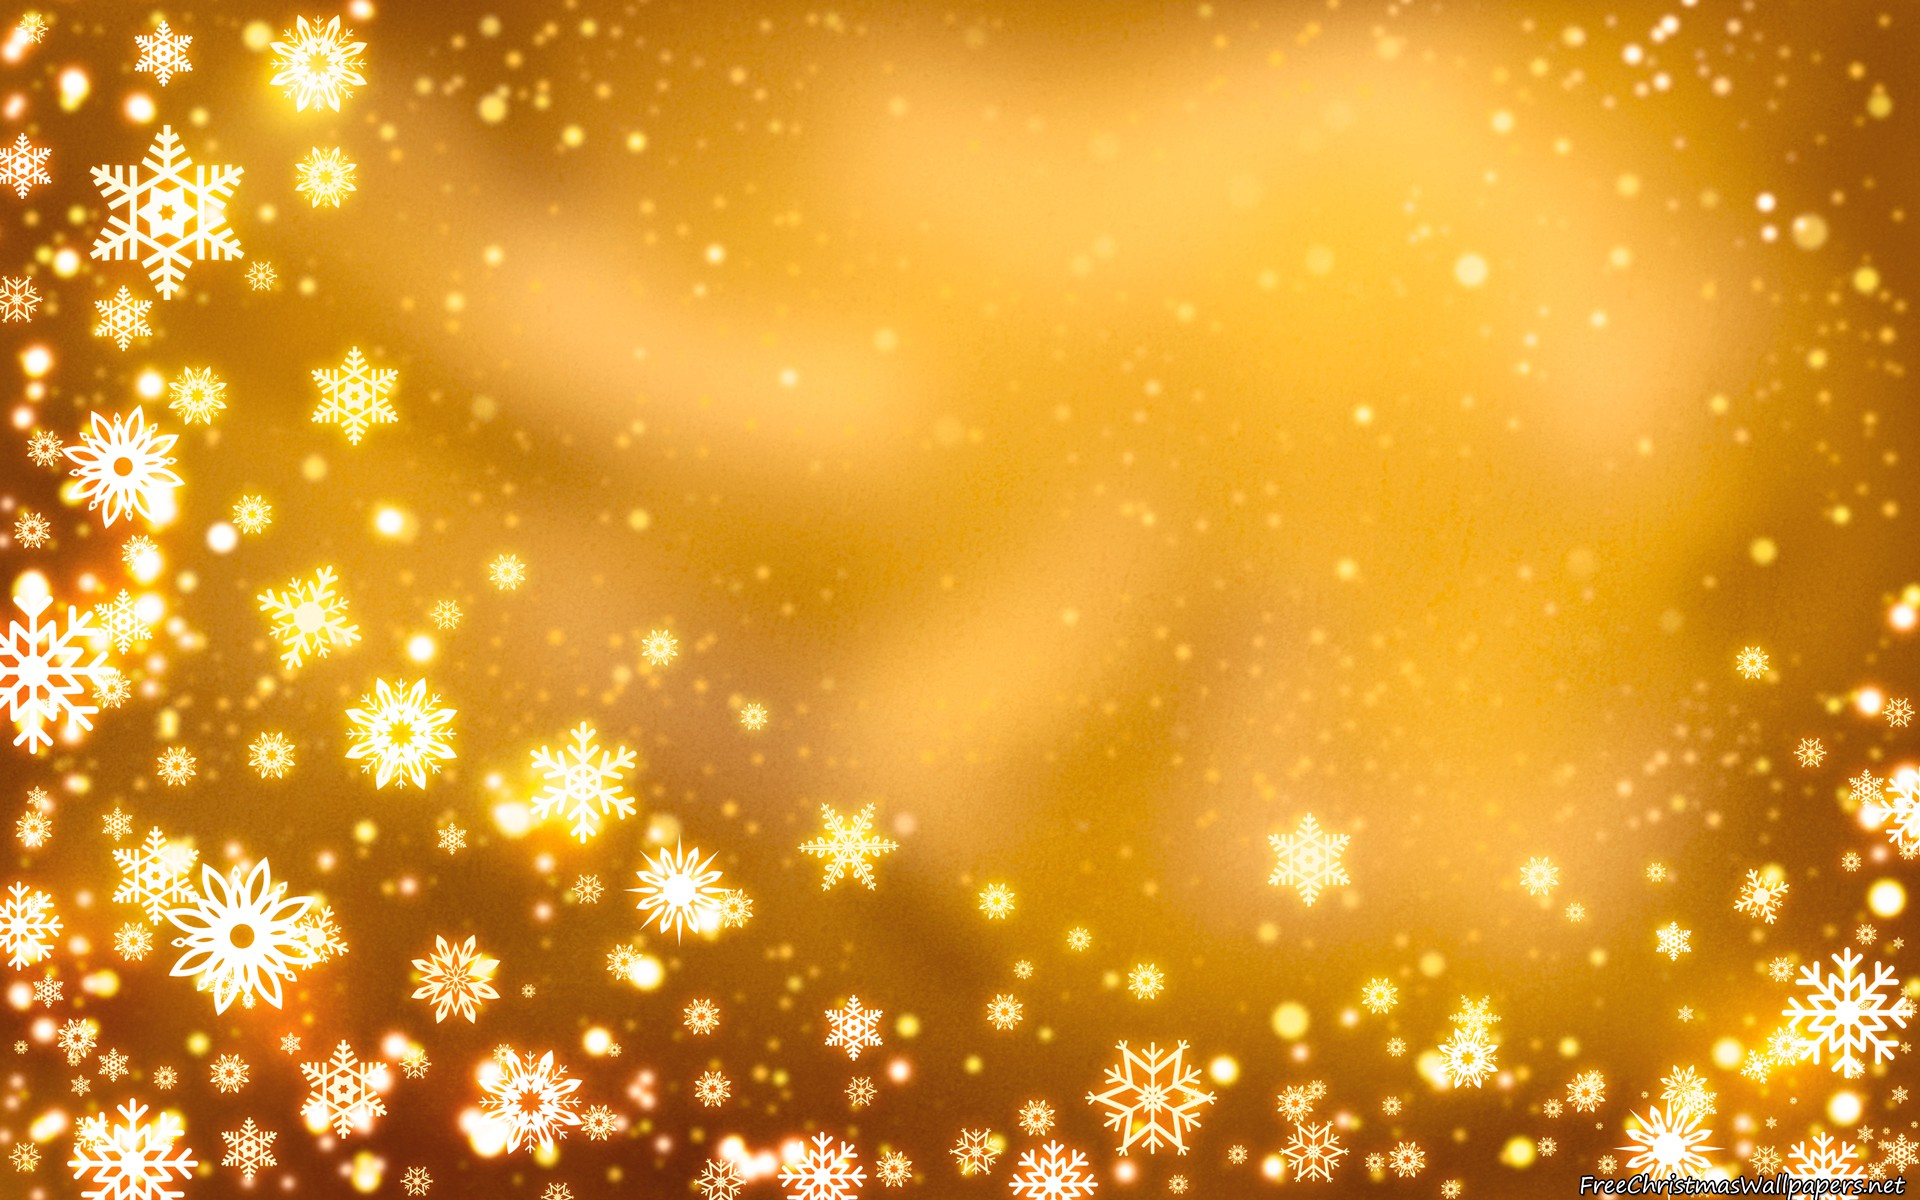 HD Widescreen Free Christmas Images Collection for Desktop